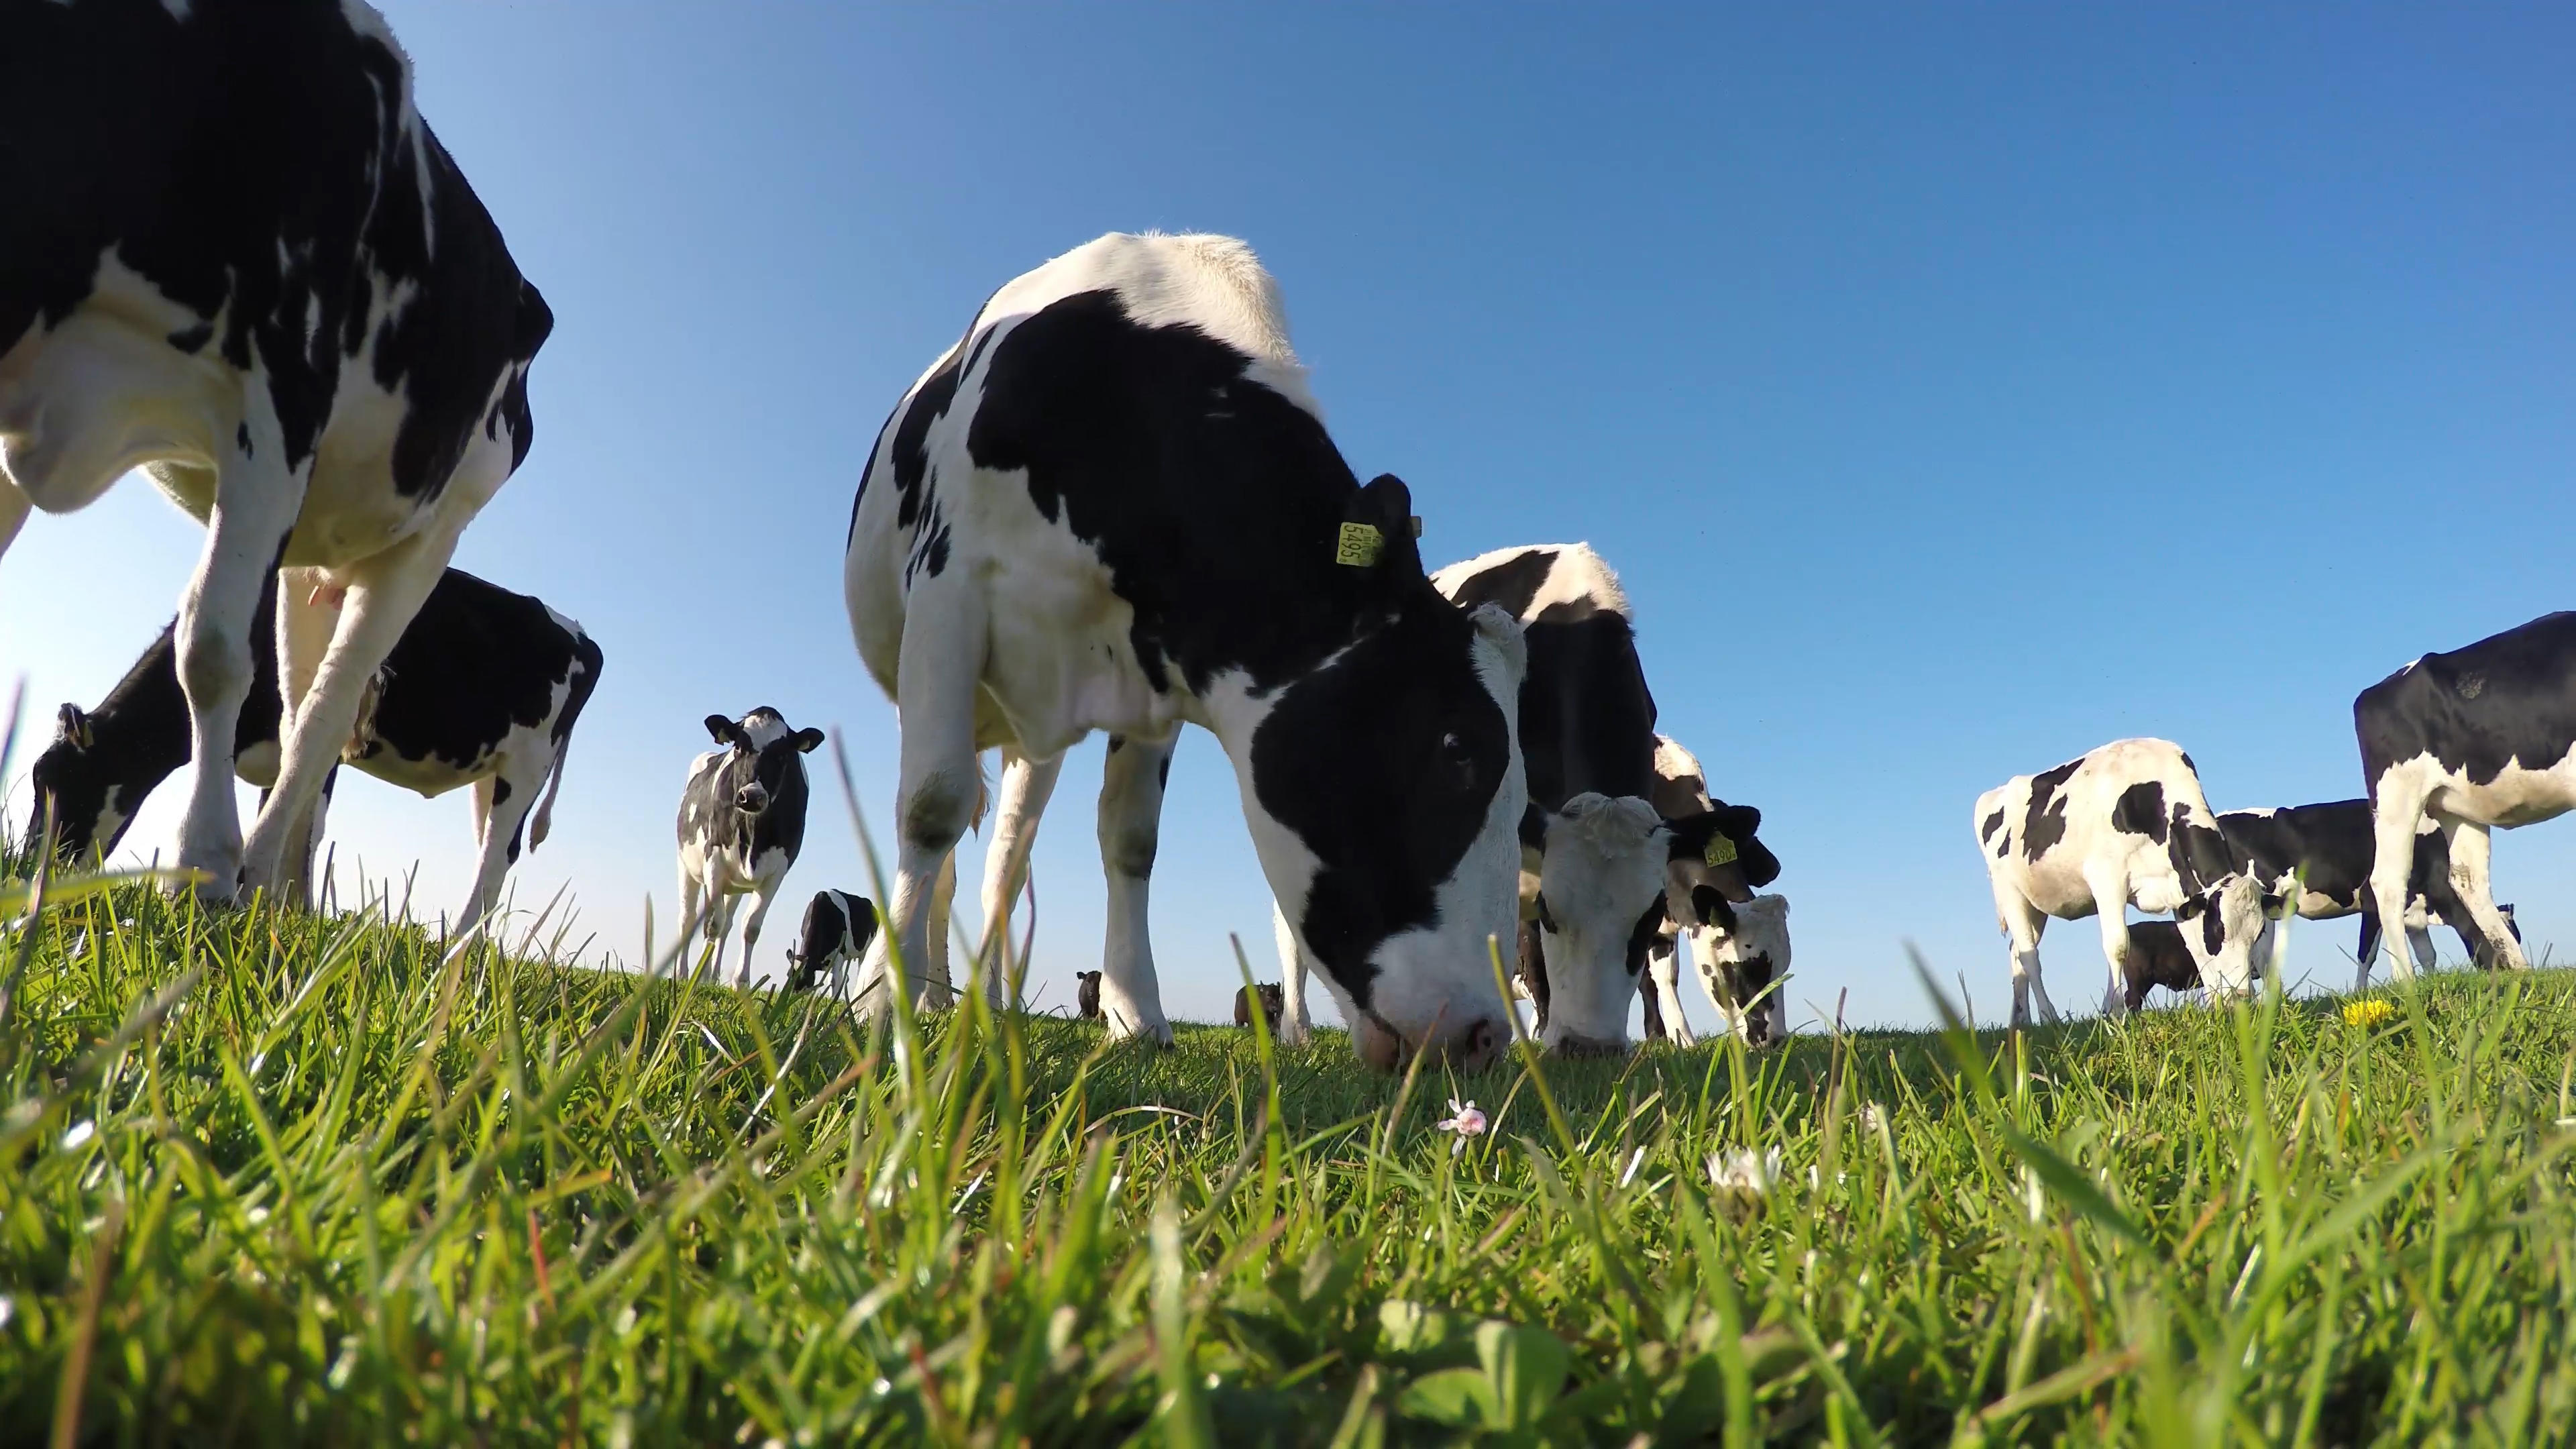 cows grassing